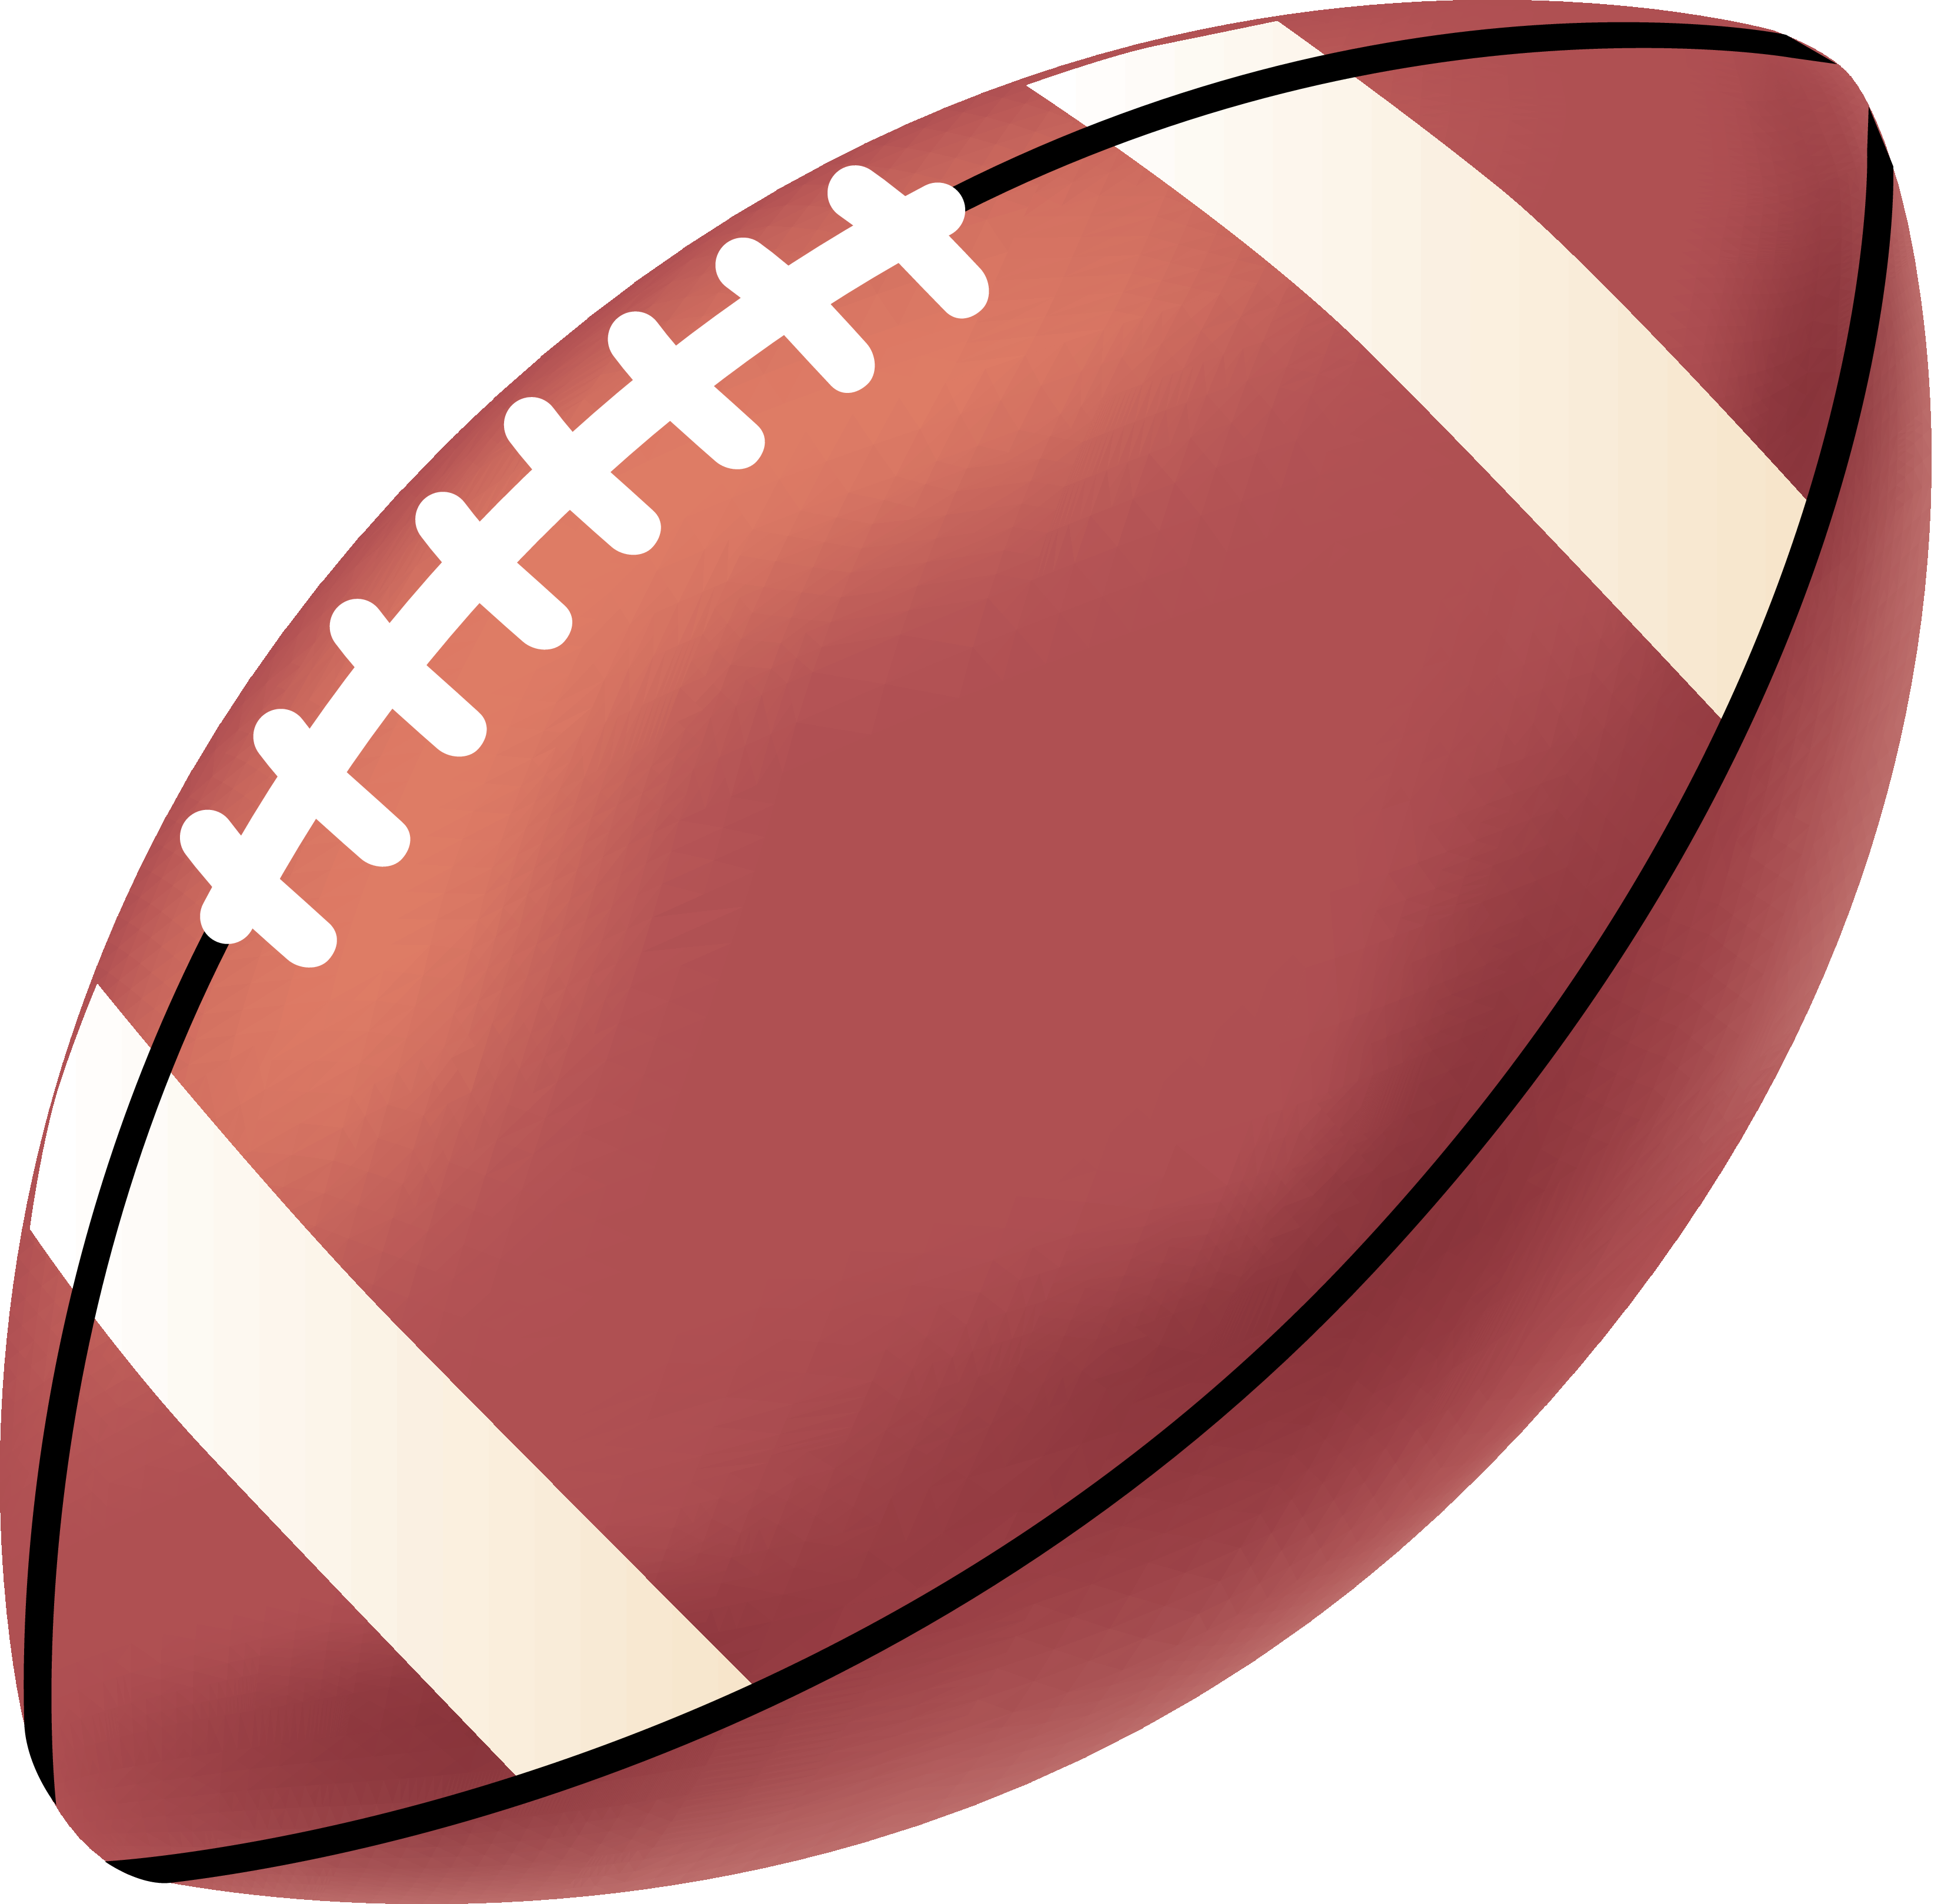 Nfl football png. Transparent pictures free icons